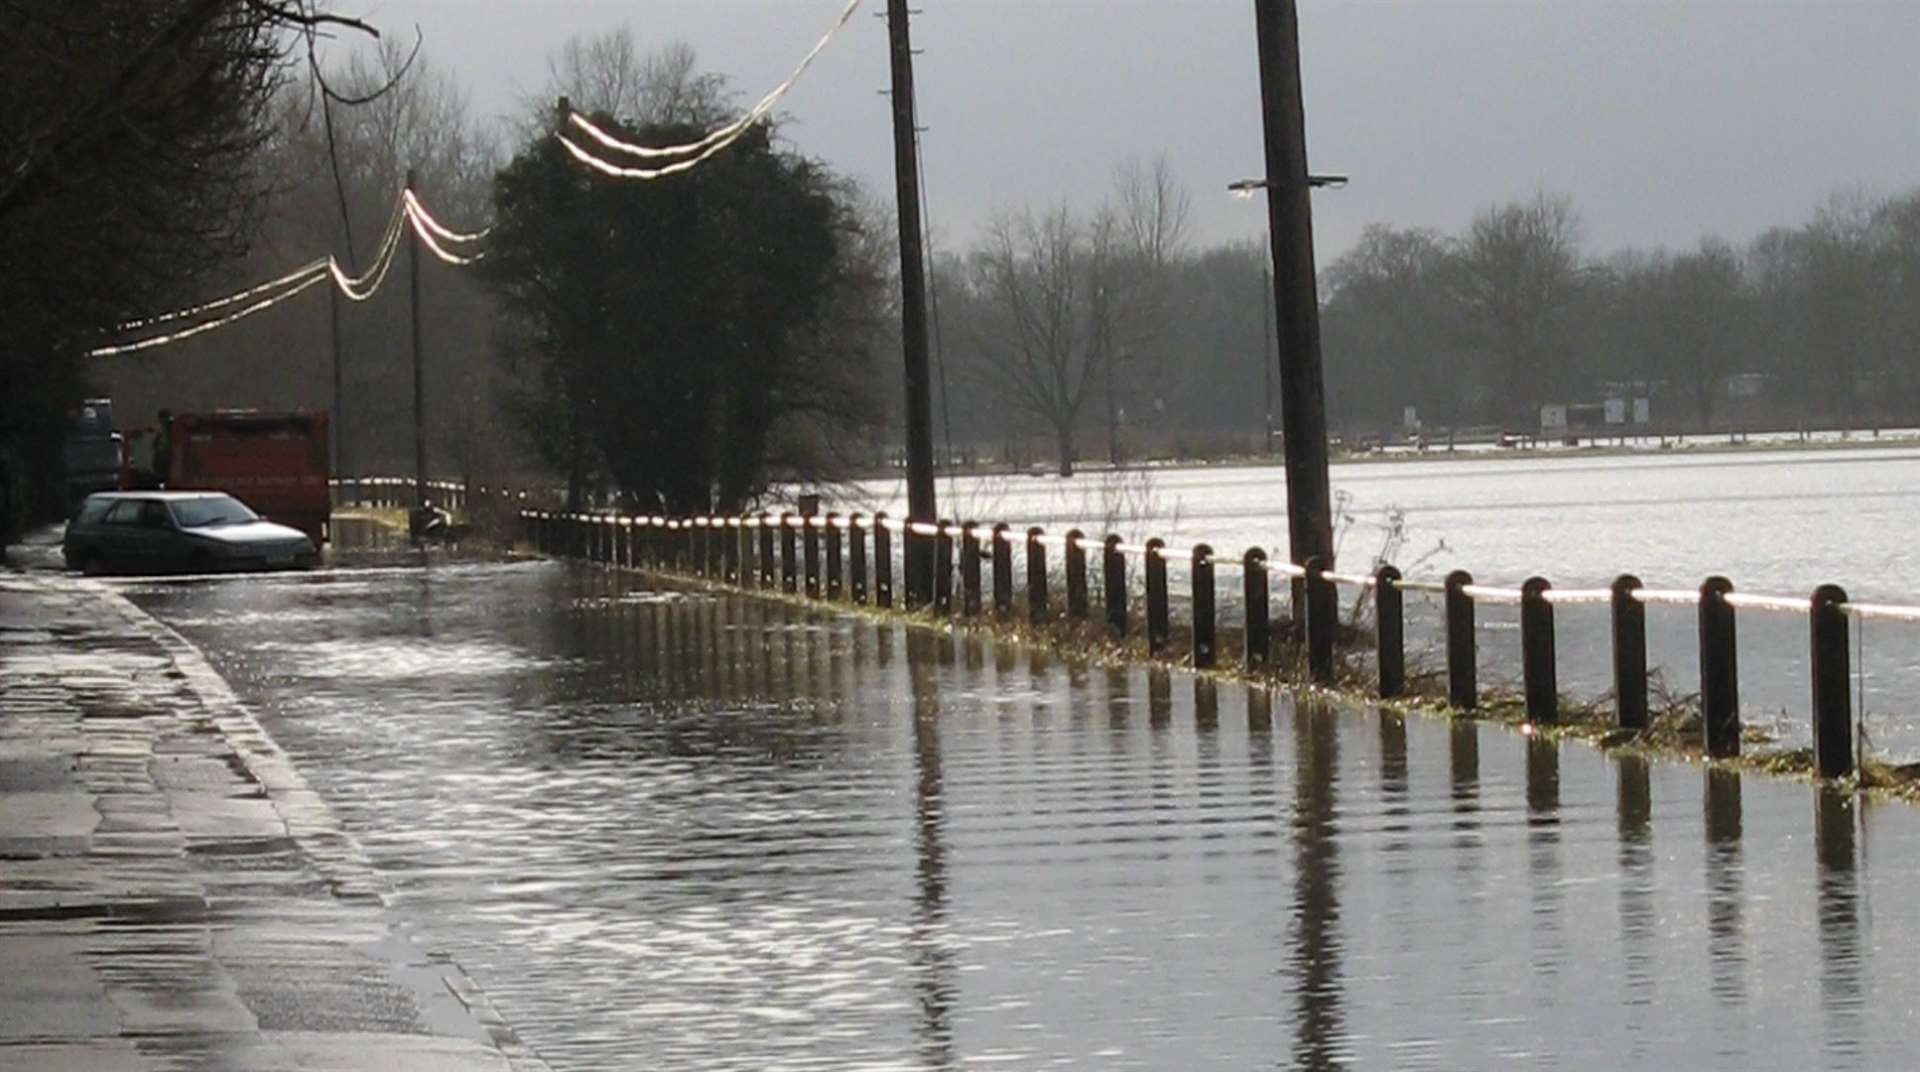 Alerts could be used to raise the alarm during times of dangerous flooding